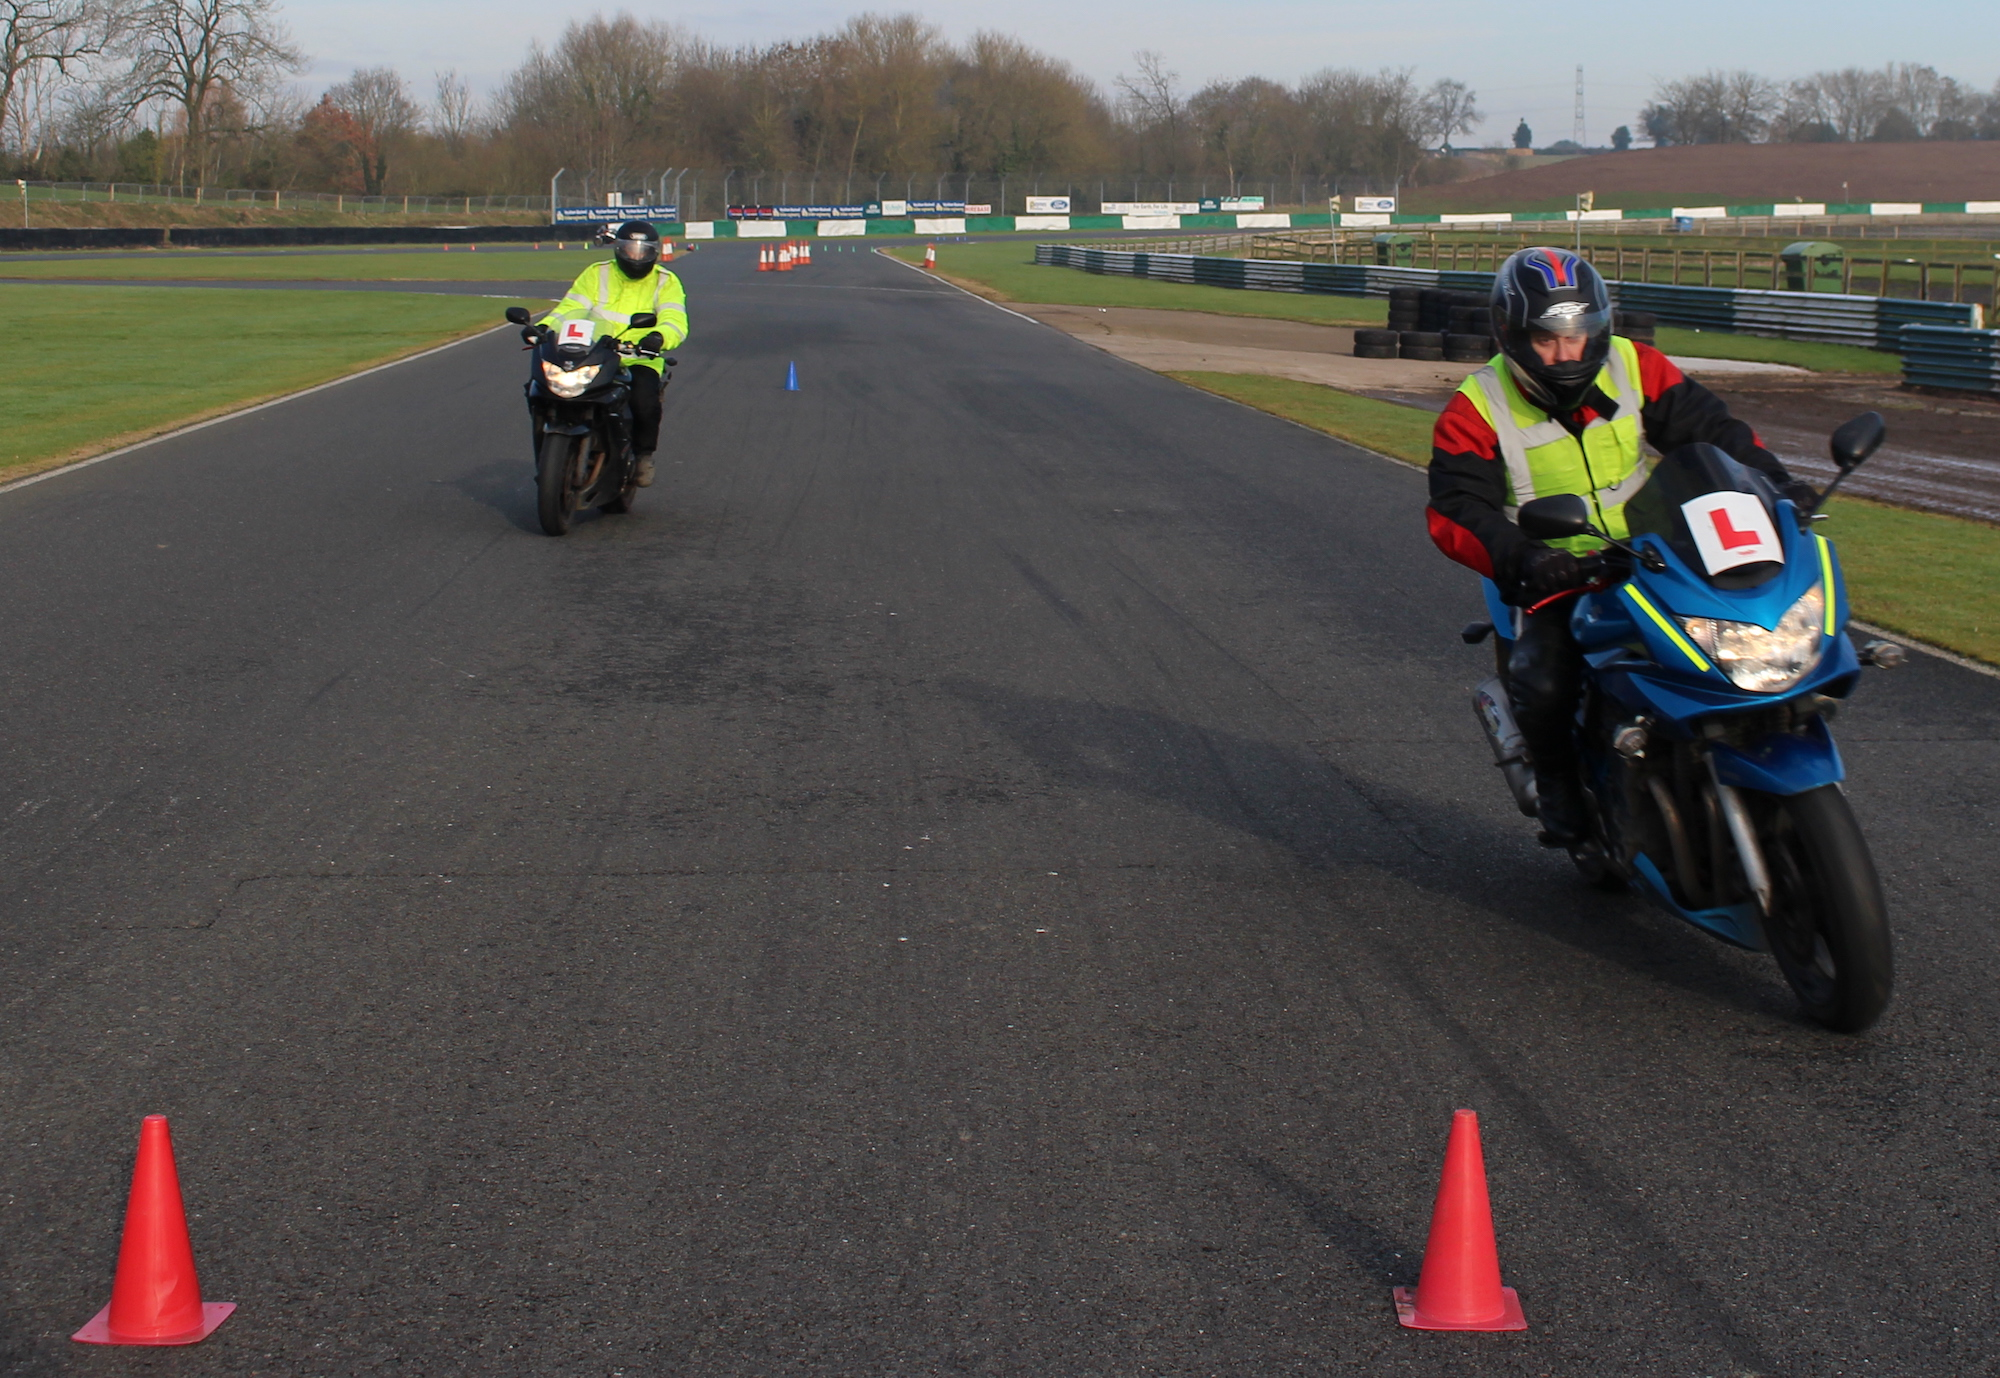 Motorbike test CBT test Local Birmingham, Redditch Slough Maidenhead Kingston upon Thames, Richmond, Sidcup, Orpington, Croydon, Mitcham, Beckenham, Wood Green, Enfield, Barnet, Kensington, Stratford, Cheshunt, Bishops Stortford, Welwyn Garden City, Luton, Dunstable, Milton Keynes, Northampton, Daventry, Leamington Spa, Wellingborough, Oakham, Peterborough, Norwich, Ipswich, Kings Lynn